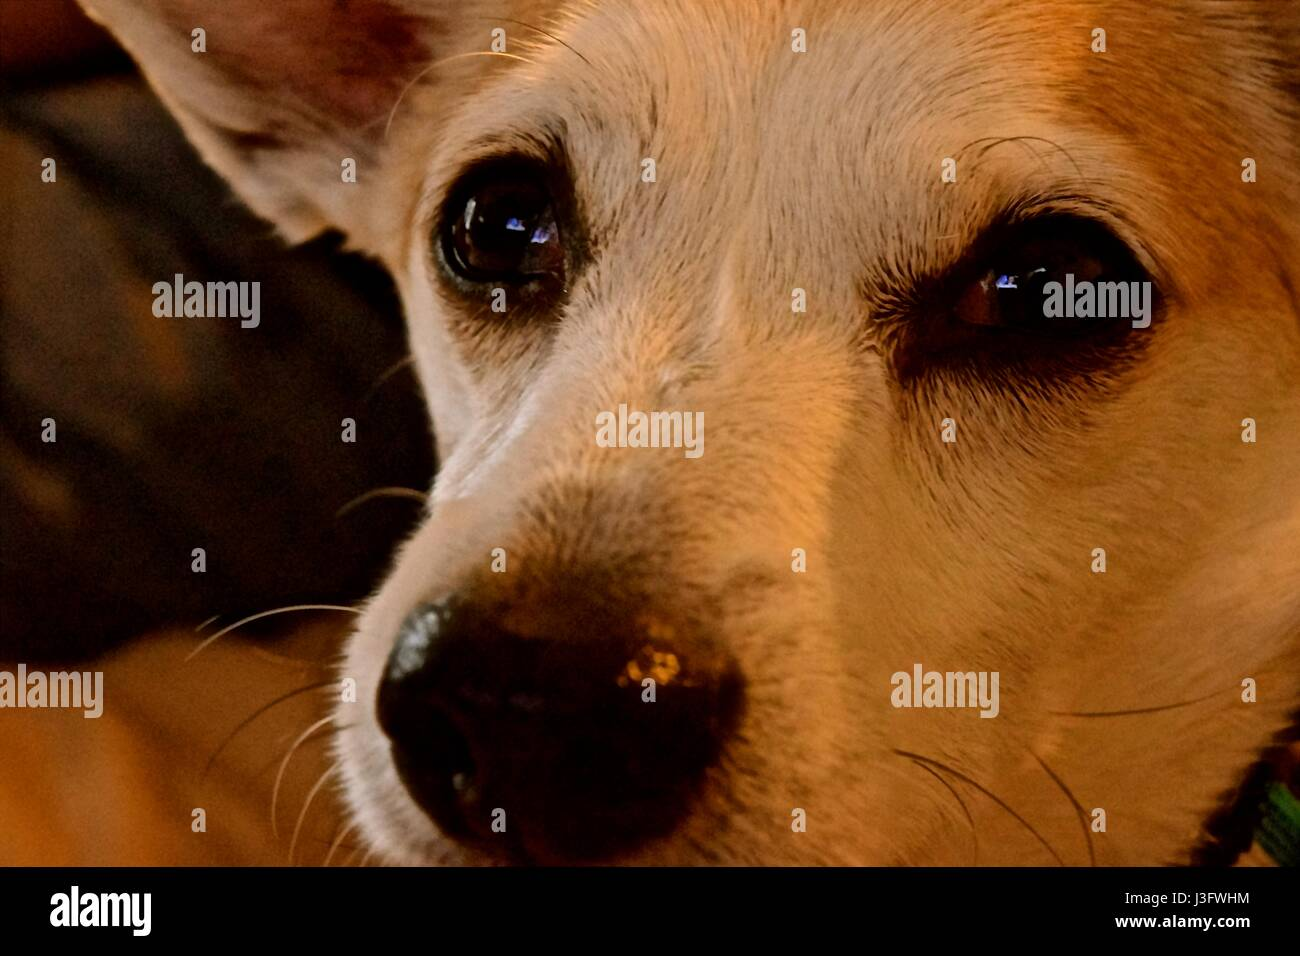 Doggies, pets, man's best friend are our most loyal companions. - Stock Image